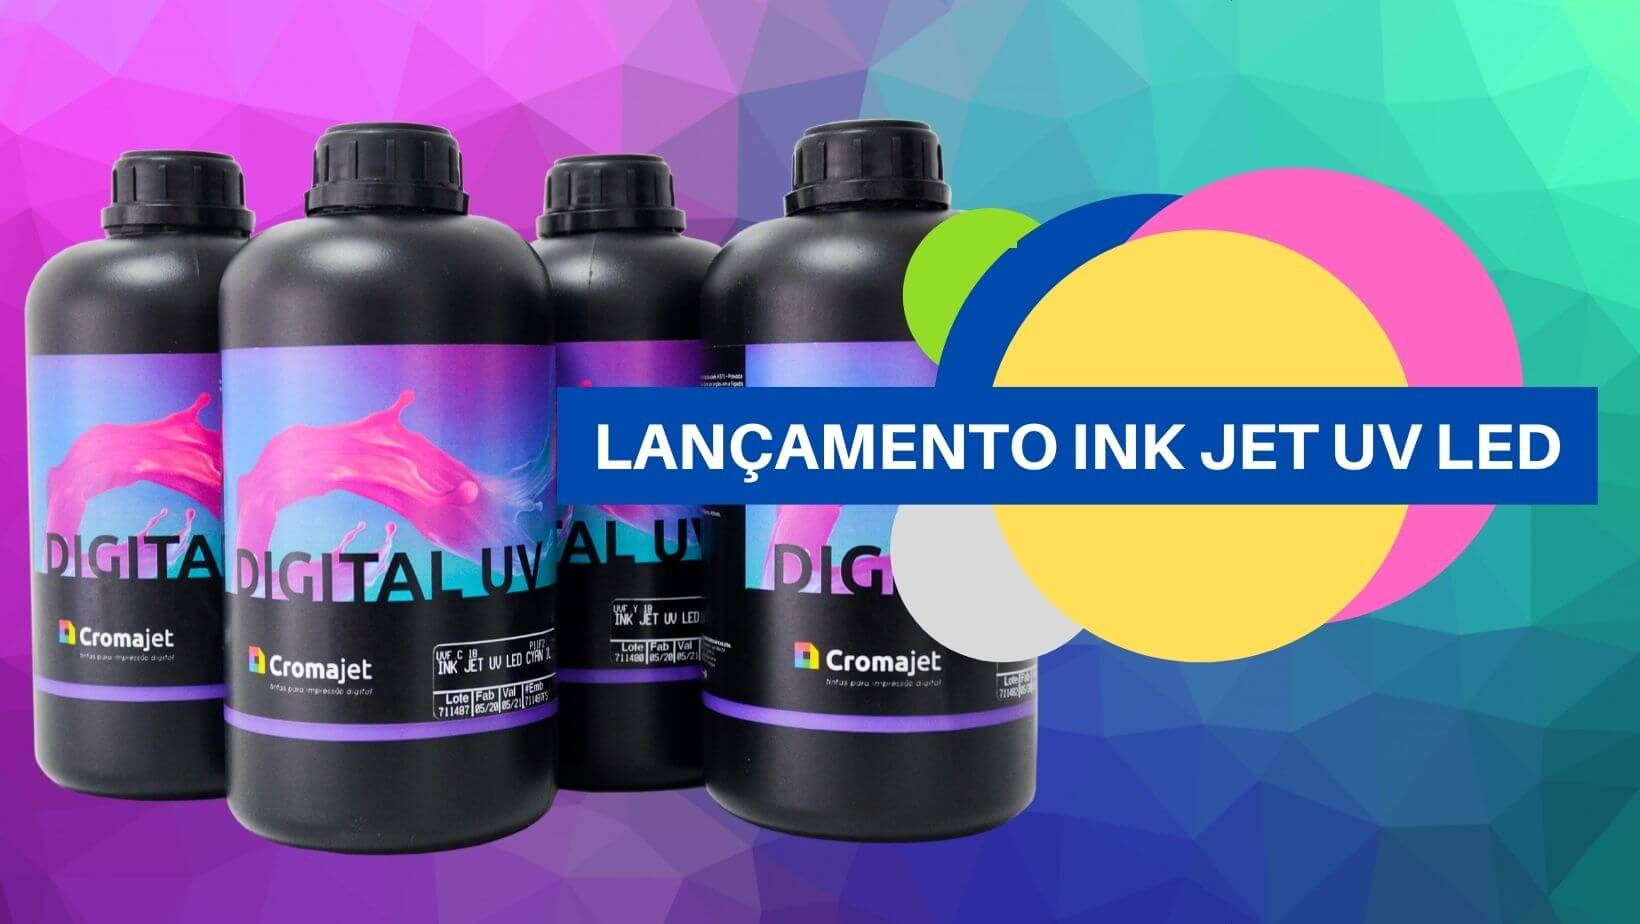 LANCAMENTO INK JET UV LED 1 - LANÇAMENTO INK JET UV LED